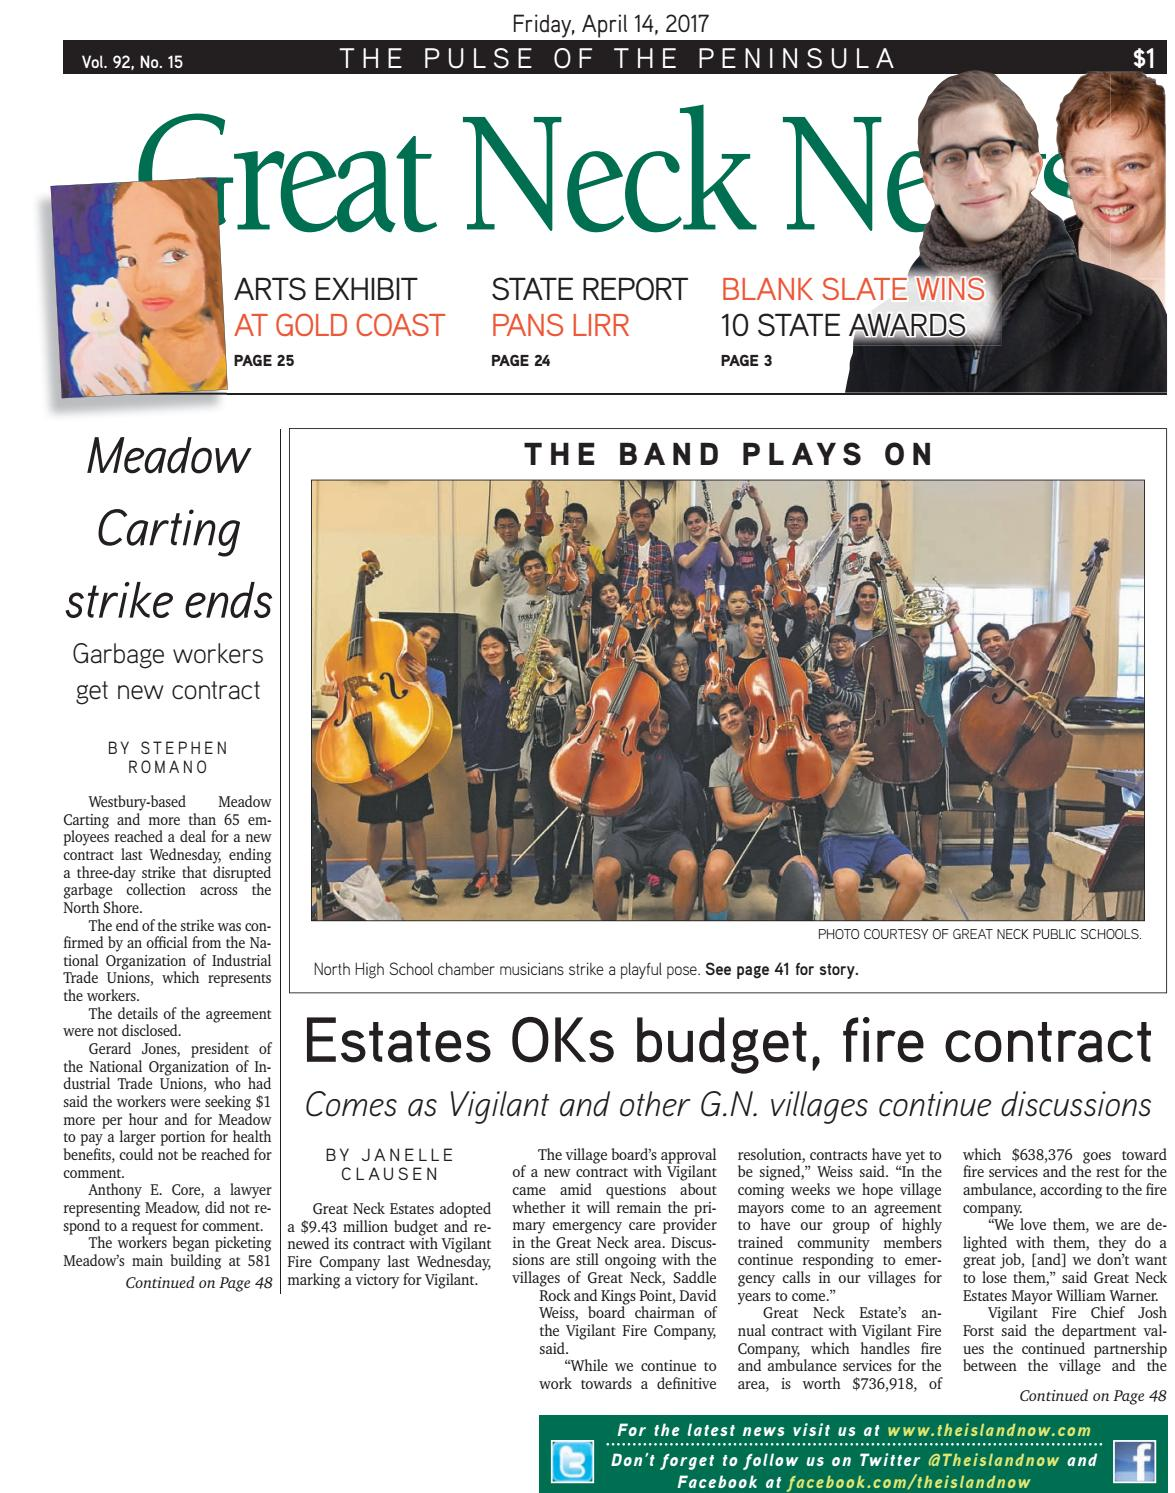 Great neck news 04 14 17 by The Island Now - issuu